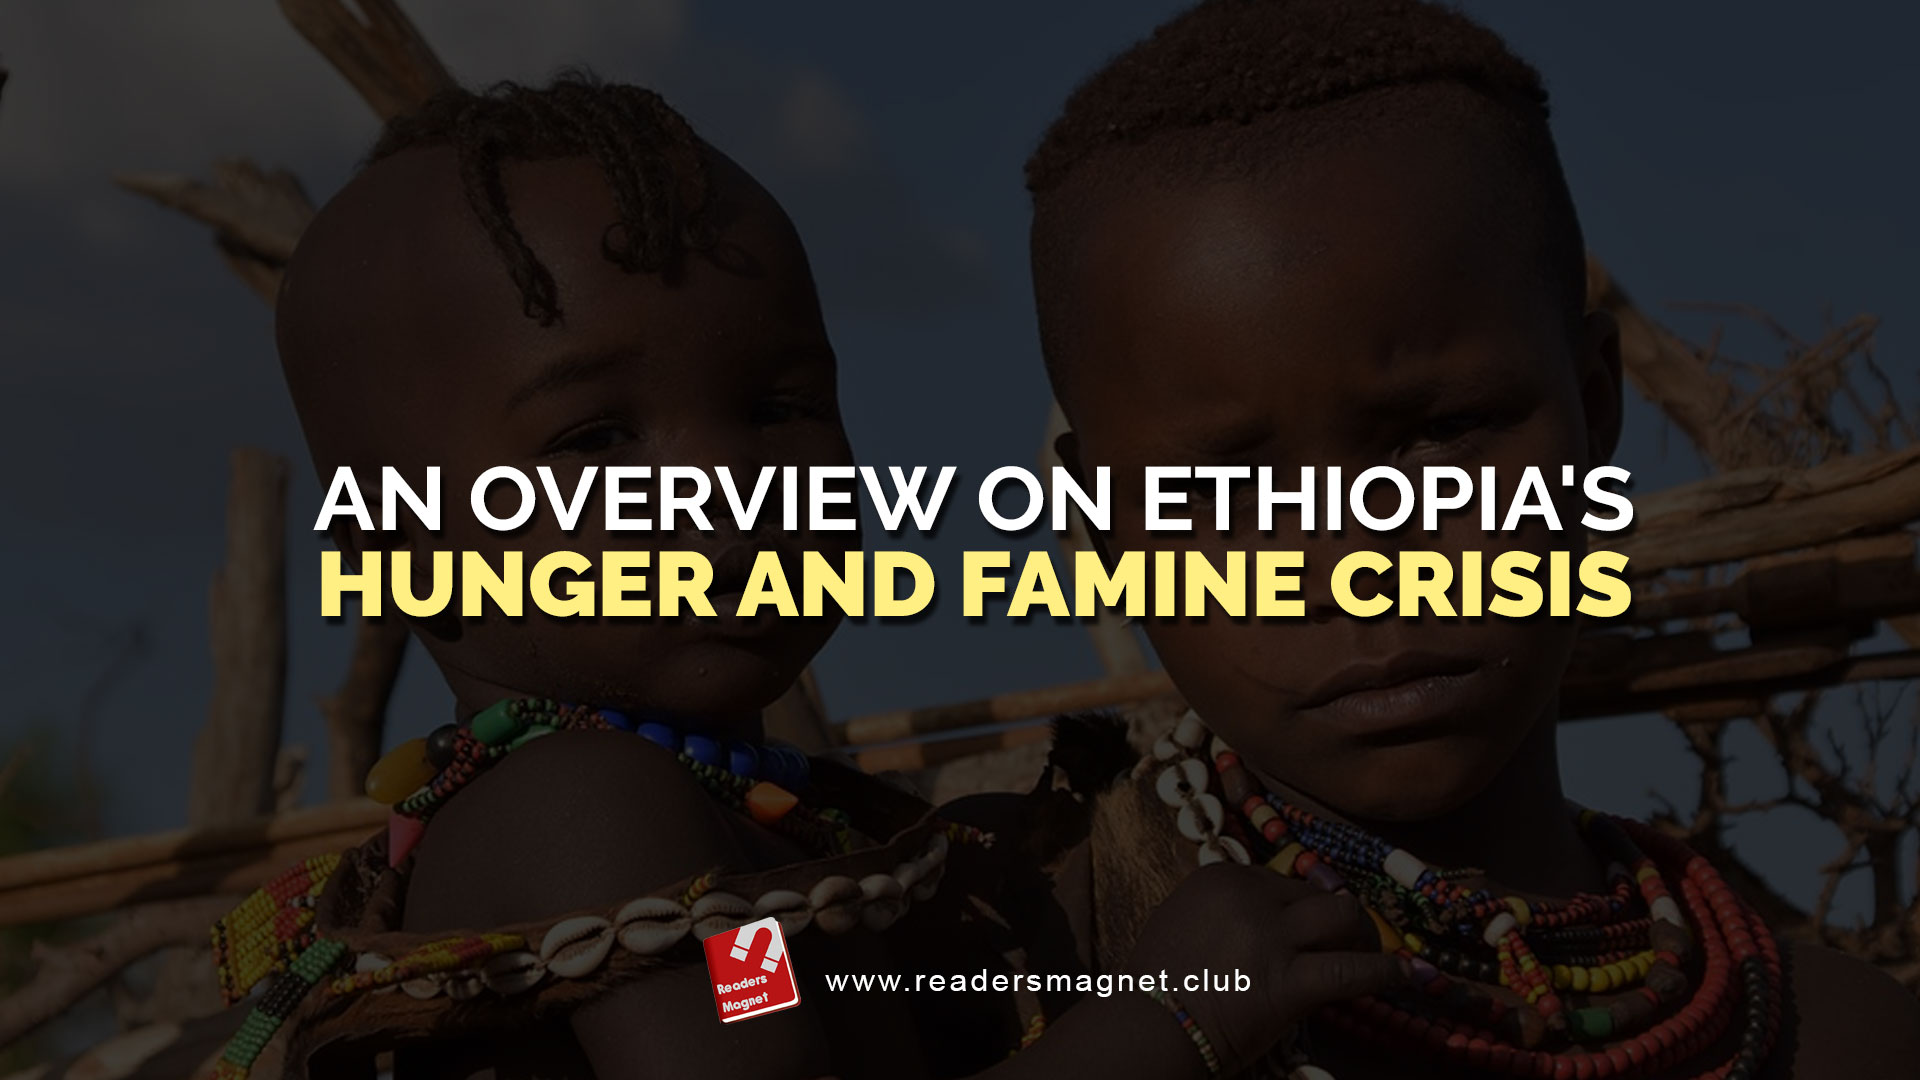 An Overview of Ethiopia's Hunger and Famine Crisis